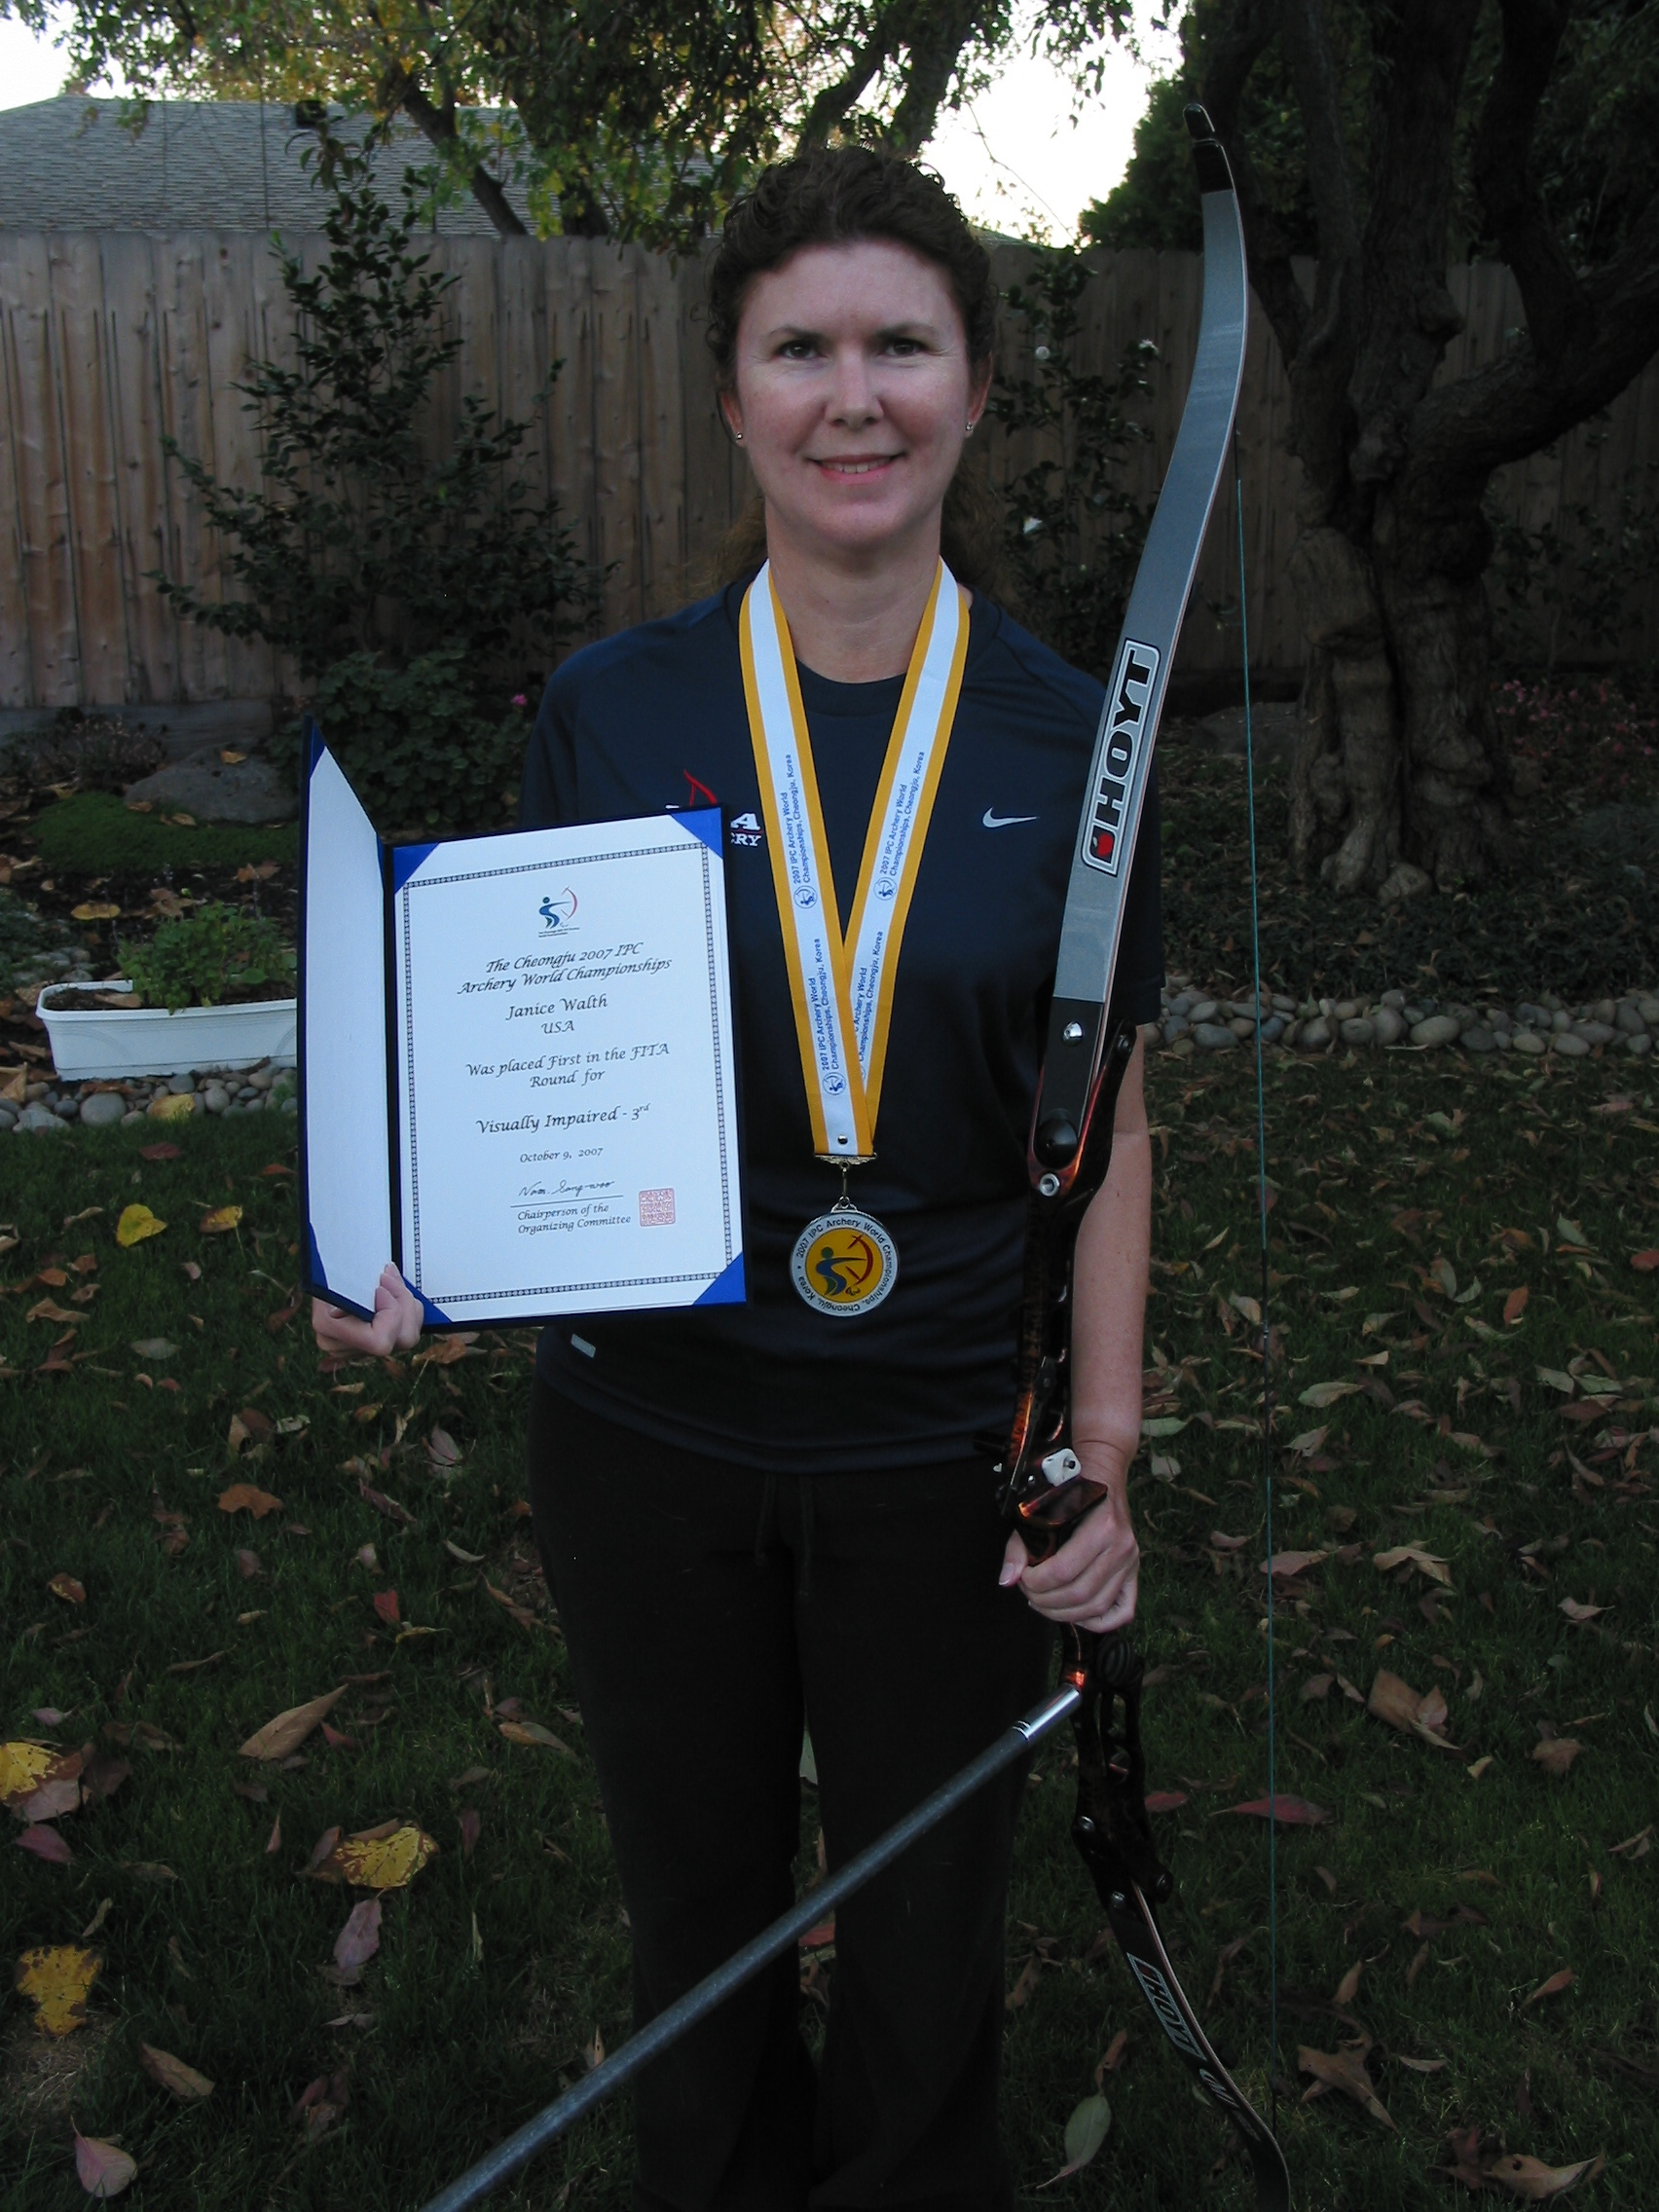 Janice Standing with silver medal around her neck. Her Hoyt bow is in her left hand and her award for the qualifier round is in her right hand